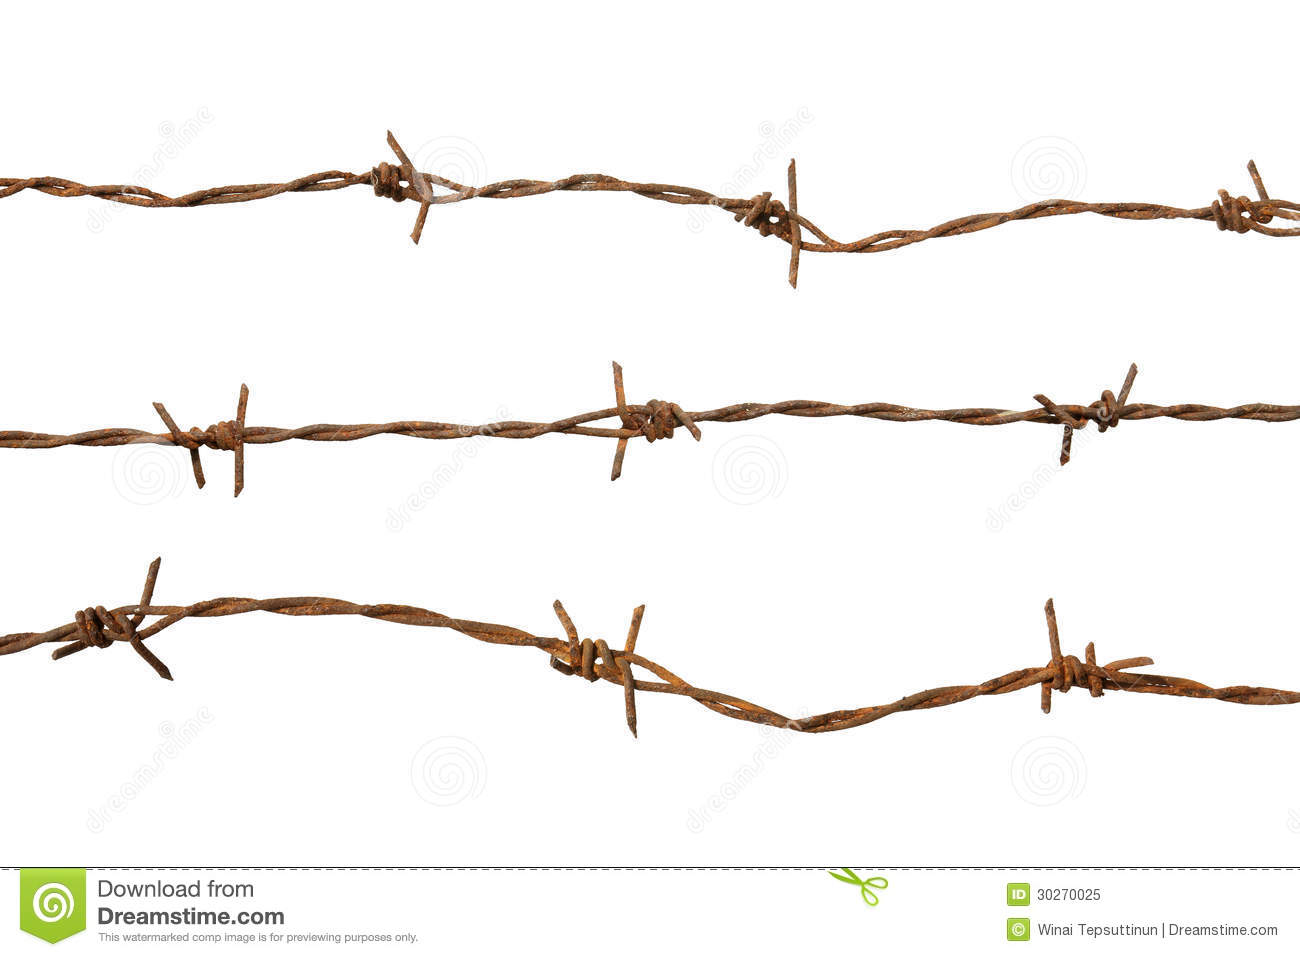 Barb wire royalty free stock photo image